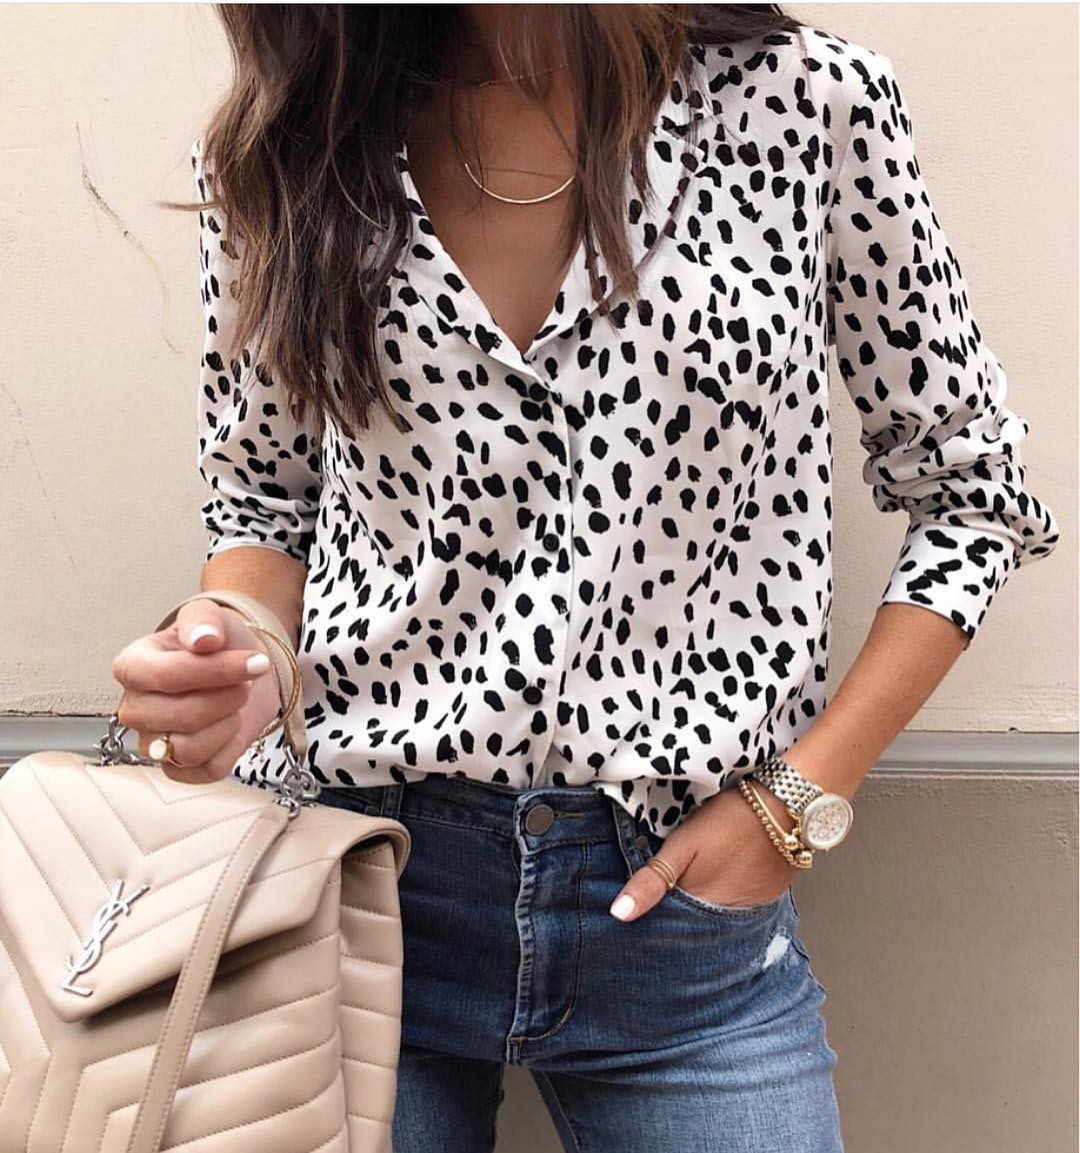 Black Spotted Shirt In White And Classic Jeans For Summer 2019